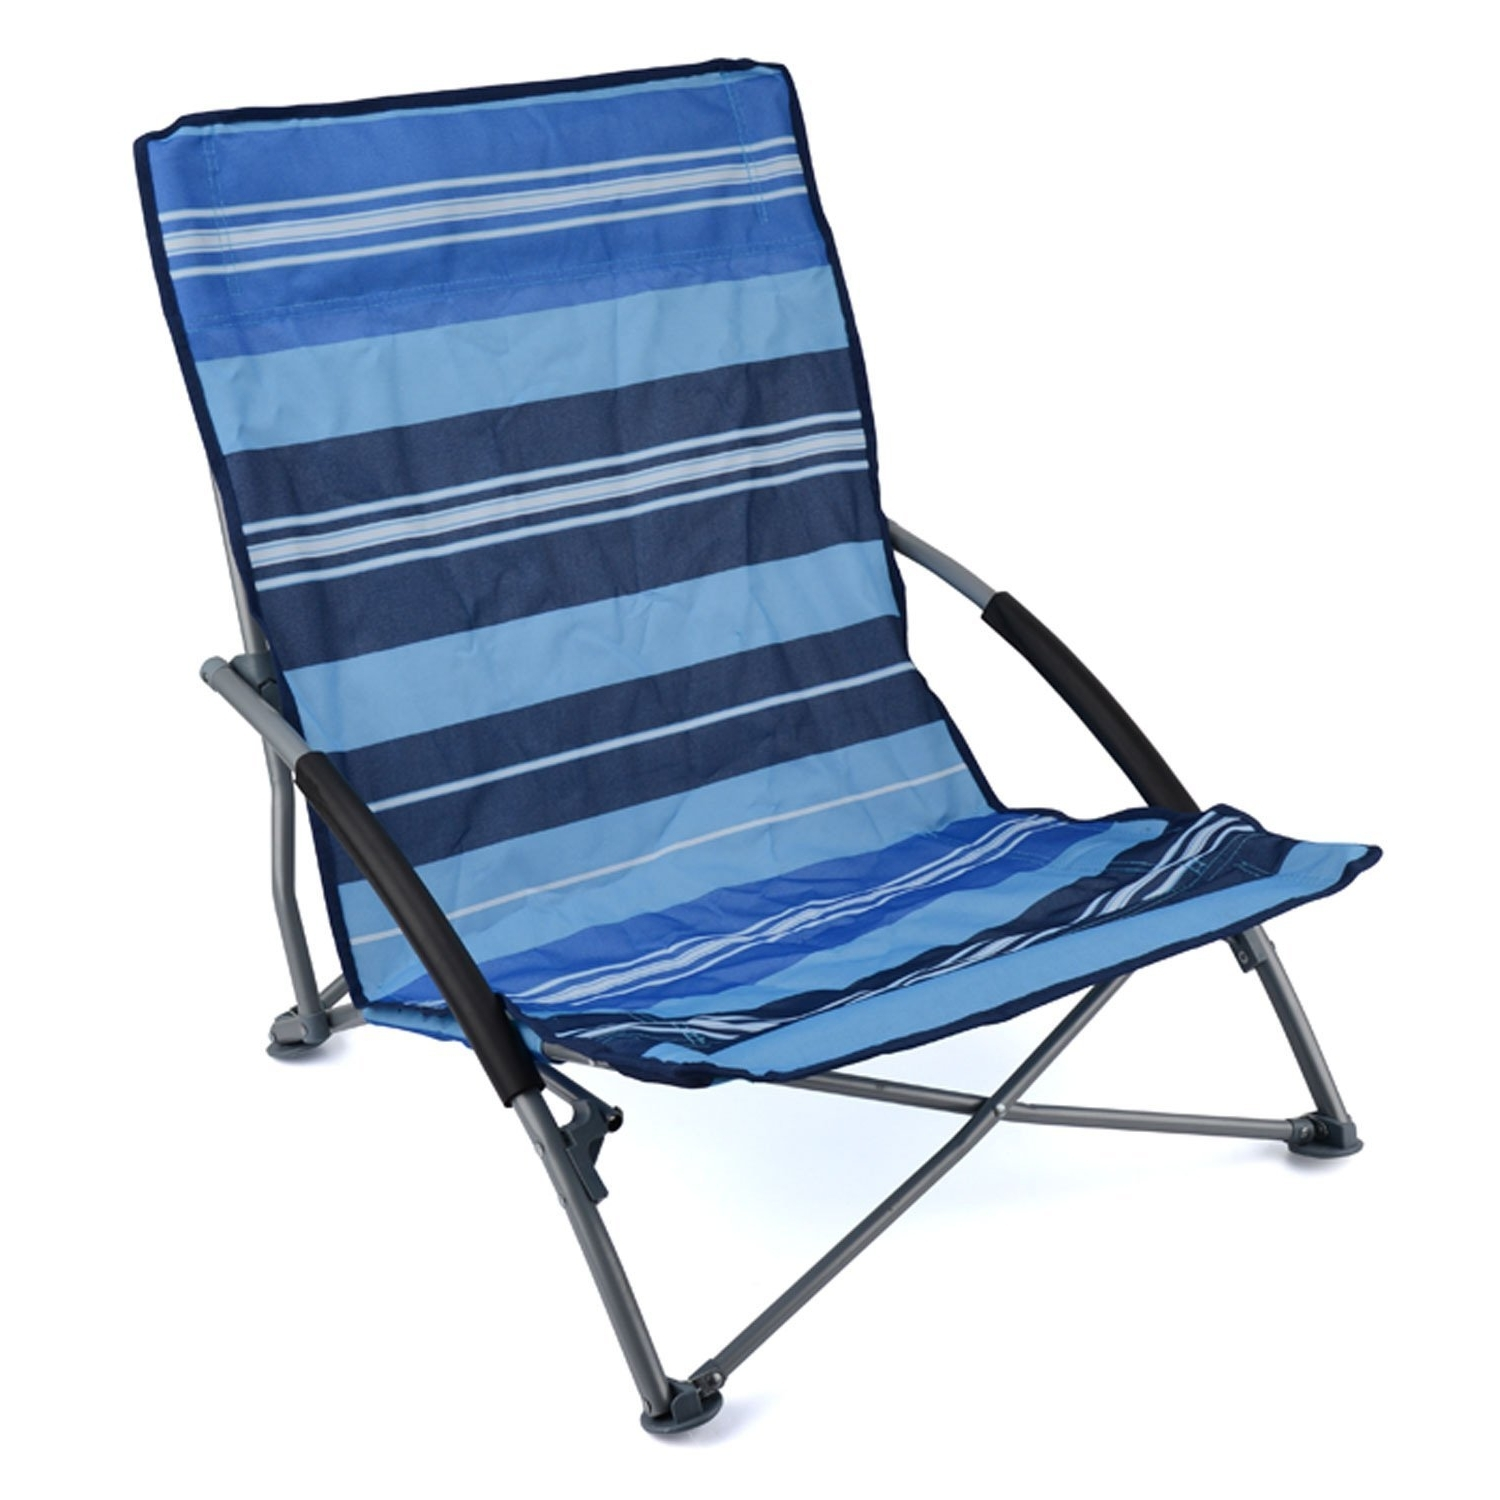 Best And Newest Convertible Chair : With Footrest Folding Bag Chairs Padded Regarding Lightweight Chaise Lounge Chairs (View 6 of 15)